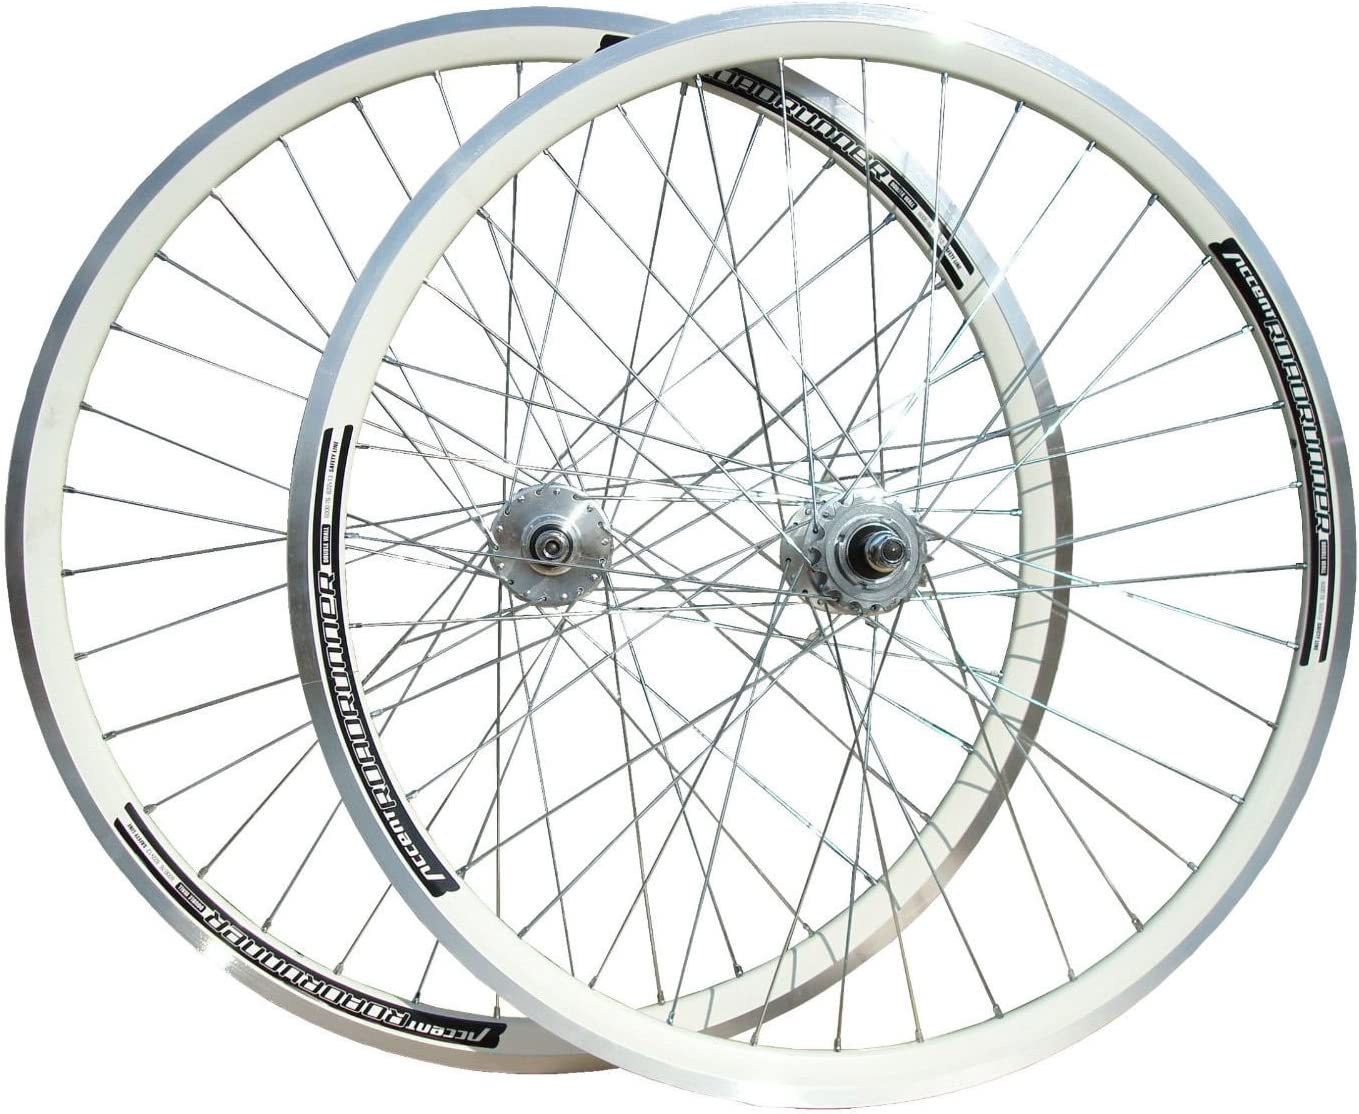 Accent Roadrunner Pignon Fixe Roues Joytech Fixie Single Speed ...